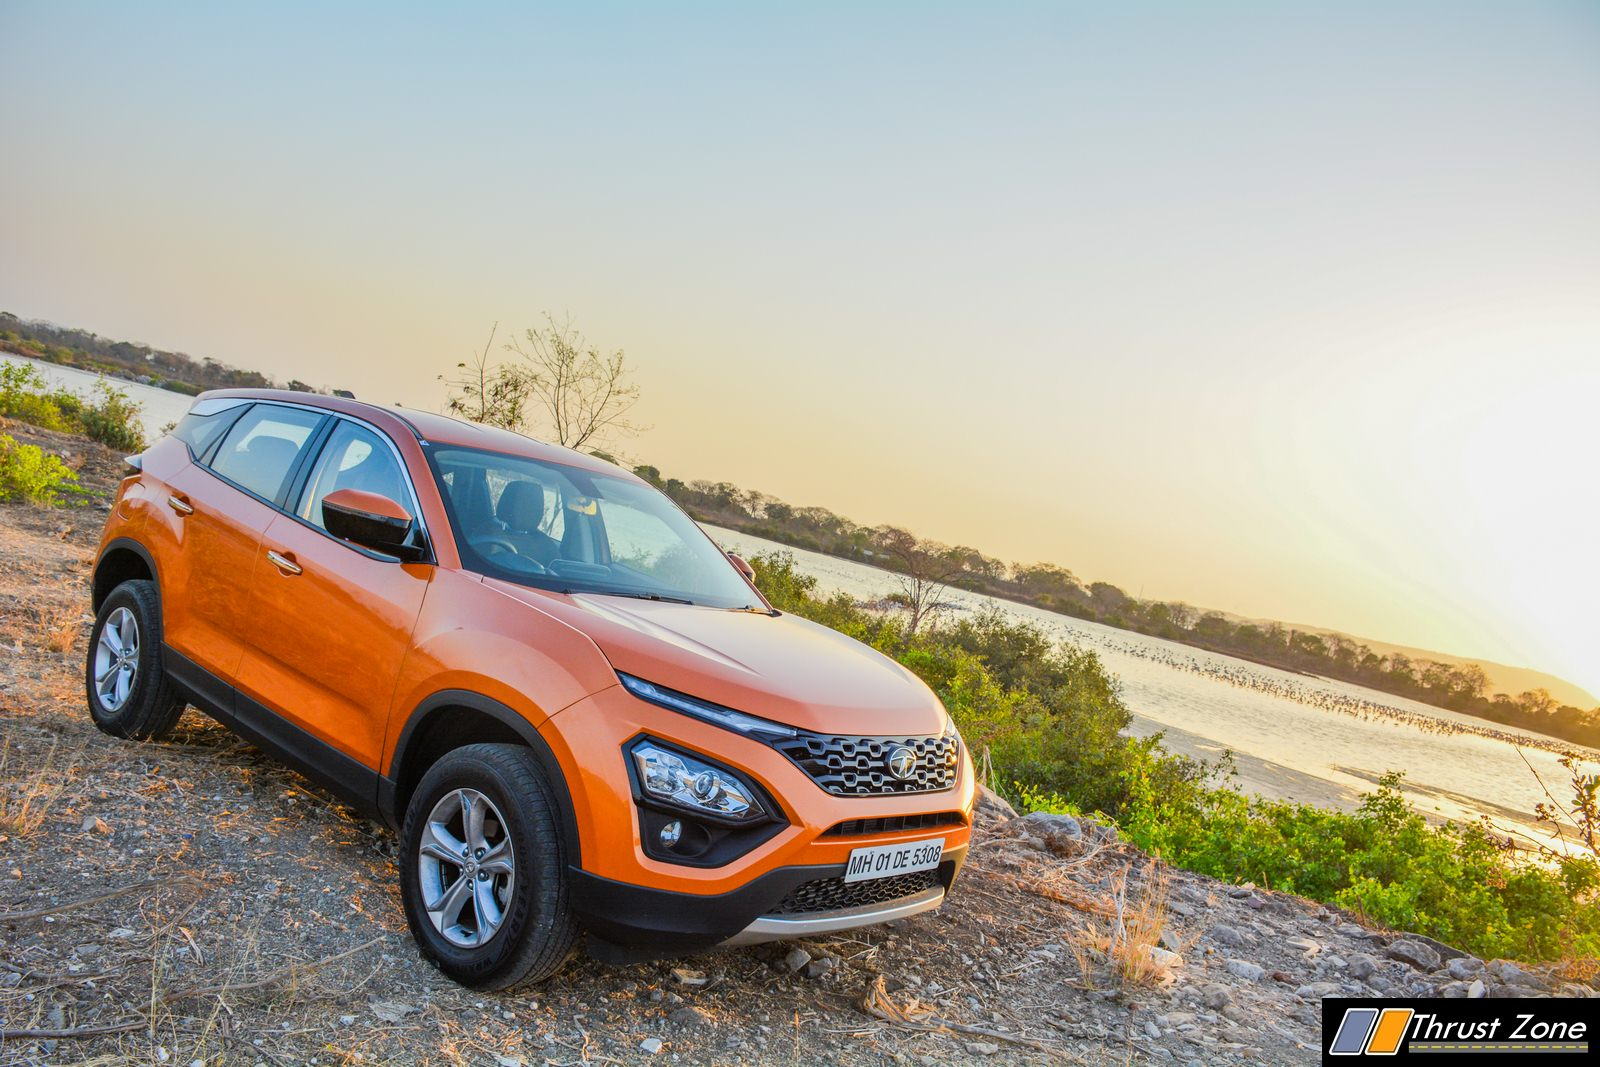 https://www.thrustzone.com/wp-content/uploads/2019/06/2019-Tata-harrier-diesel-manual-review-18.jpg